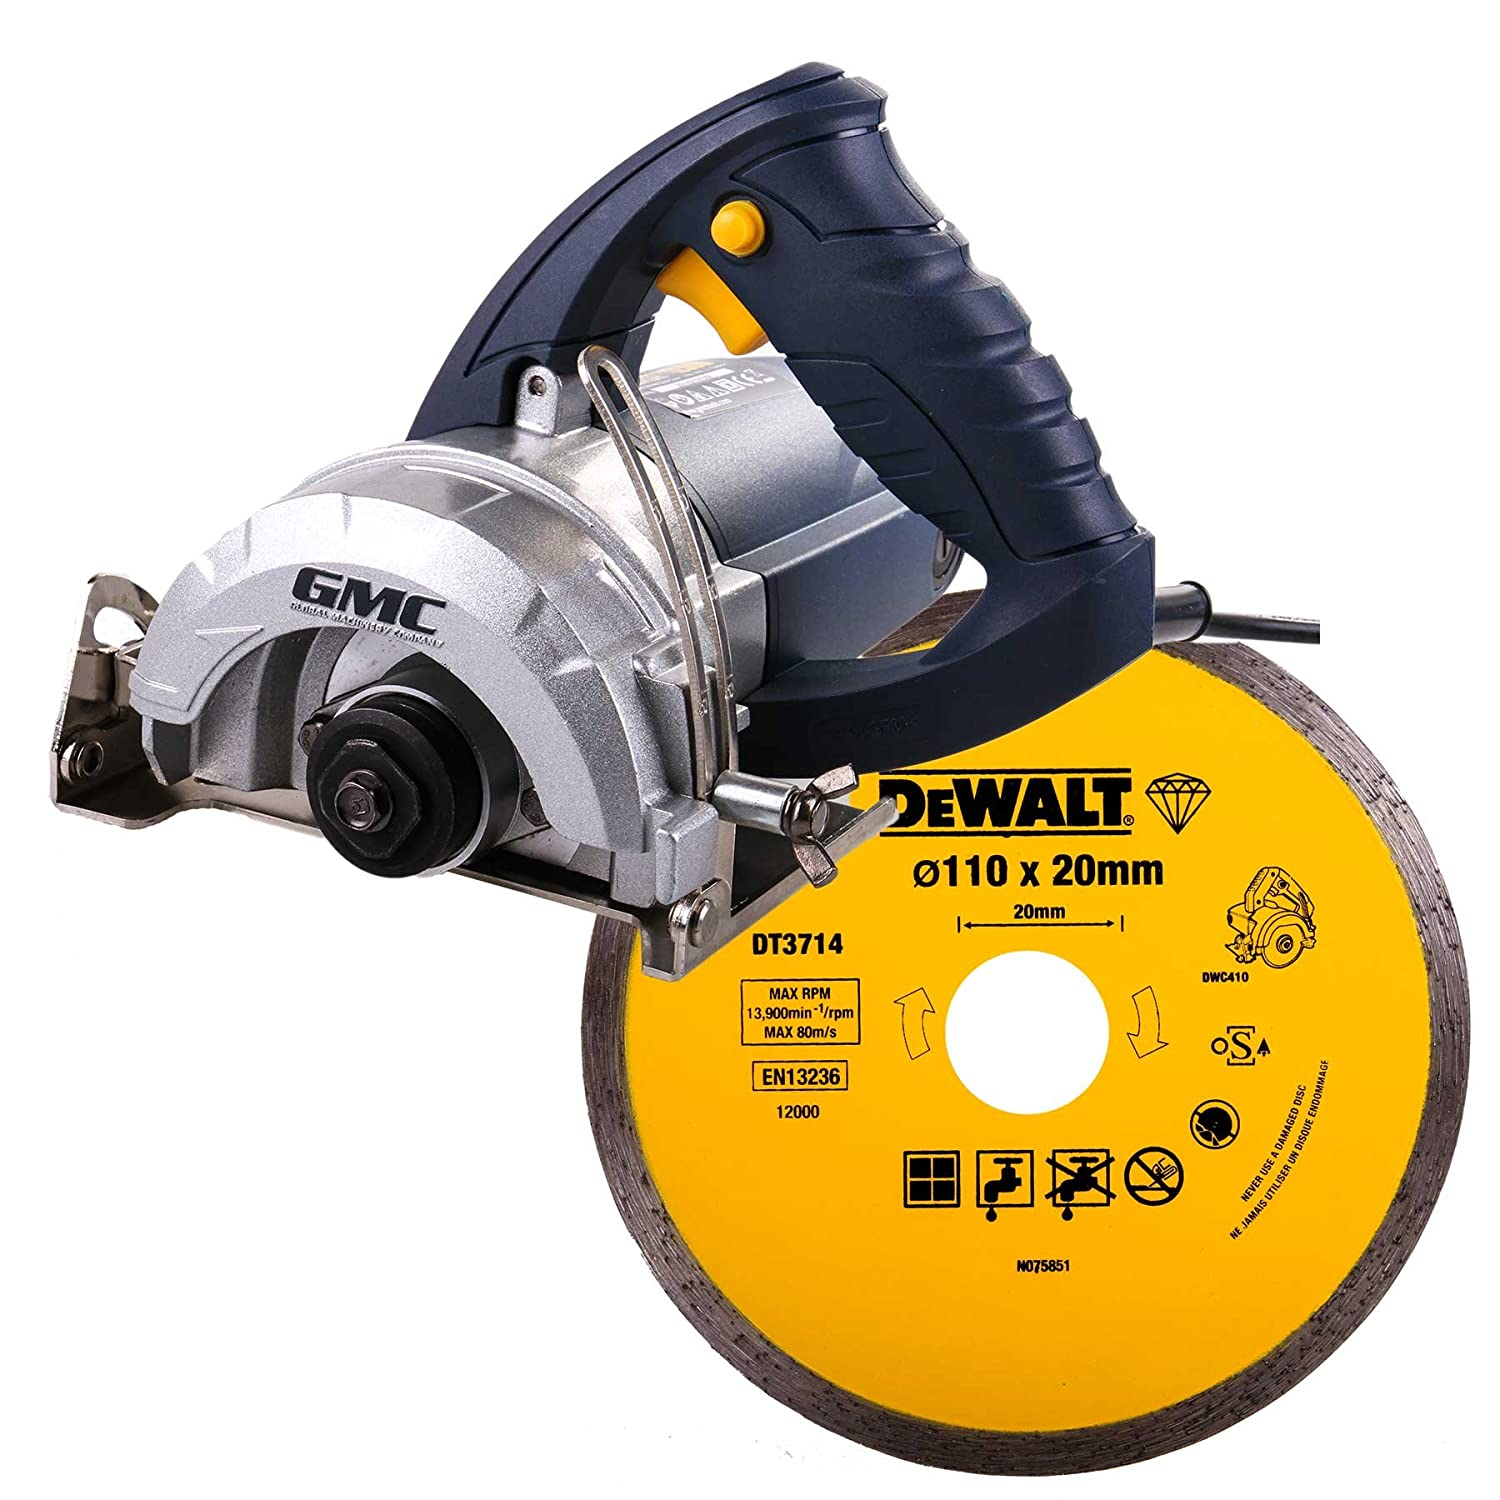 hand held wet saw. gmc 263288 wet stone cutter 110mm 1250w 230v kit with blade: amazon.co.uk: diy \u0026 tools hand held saw